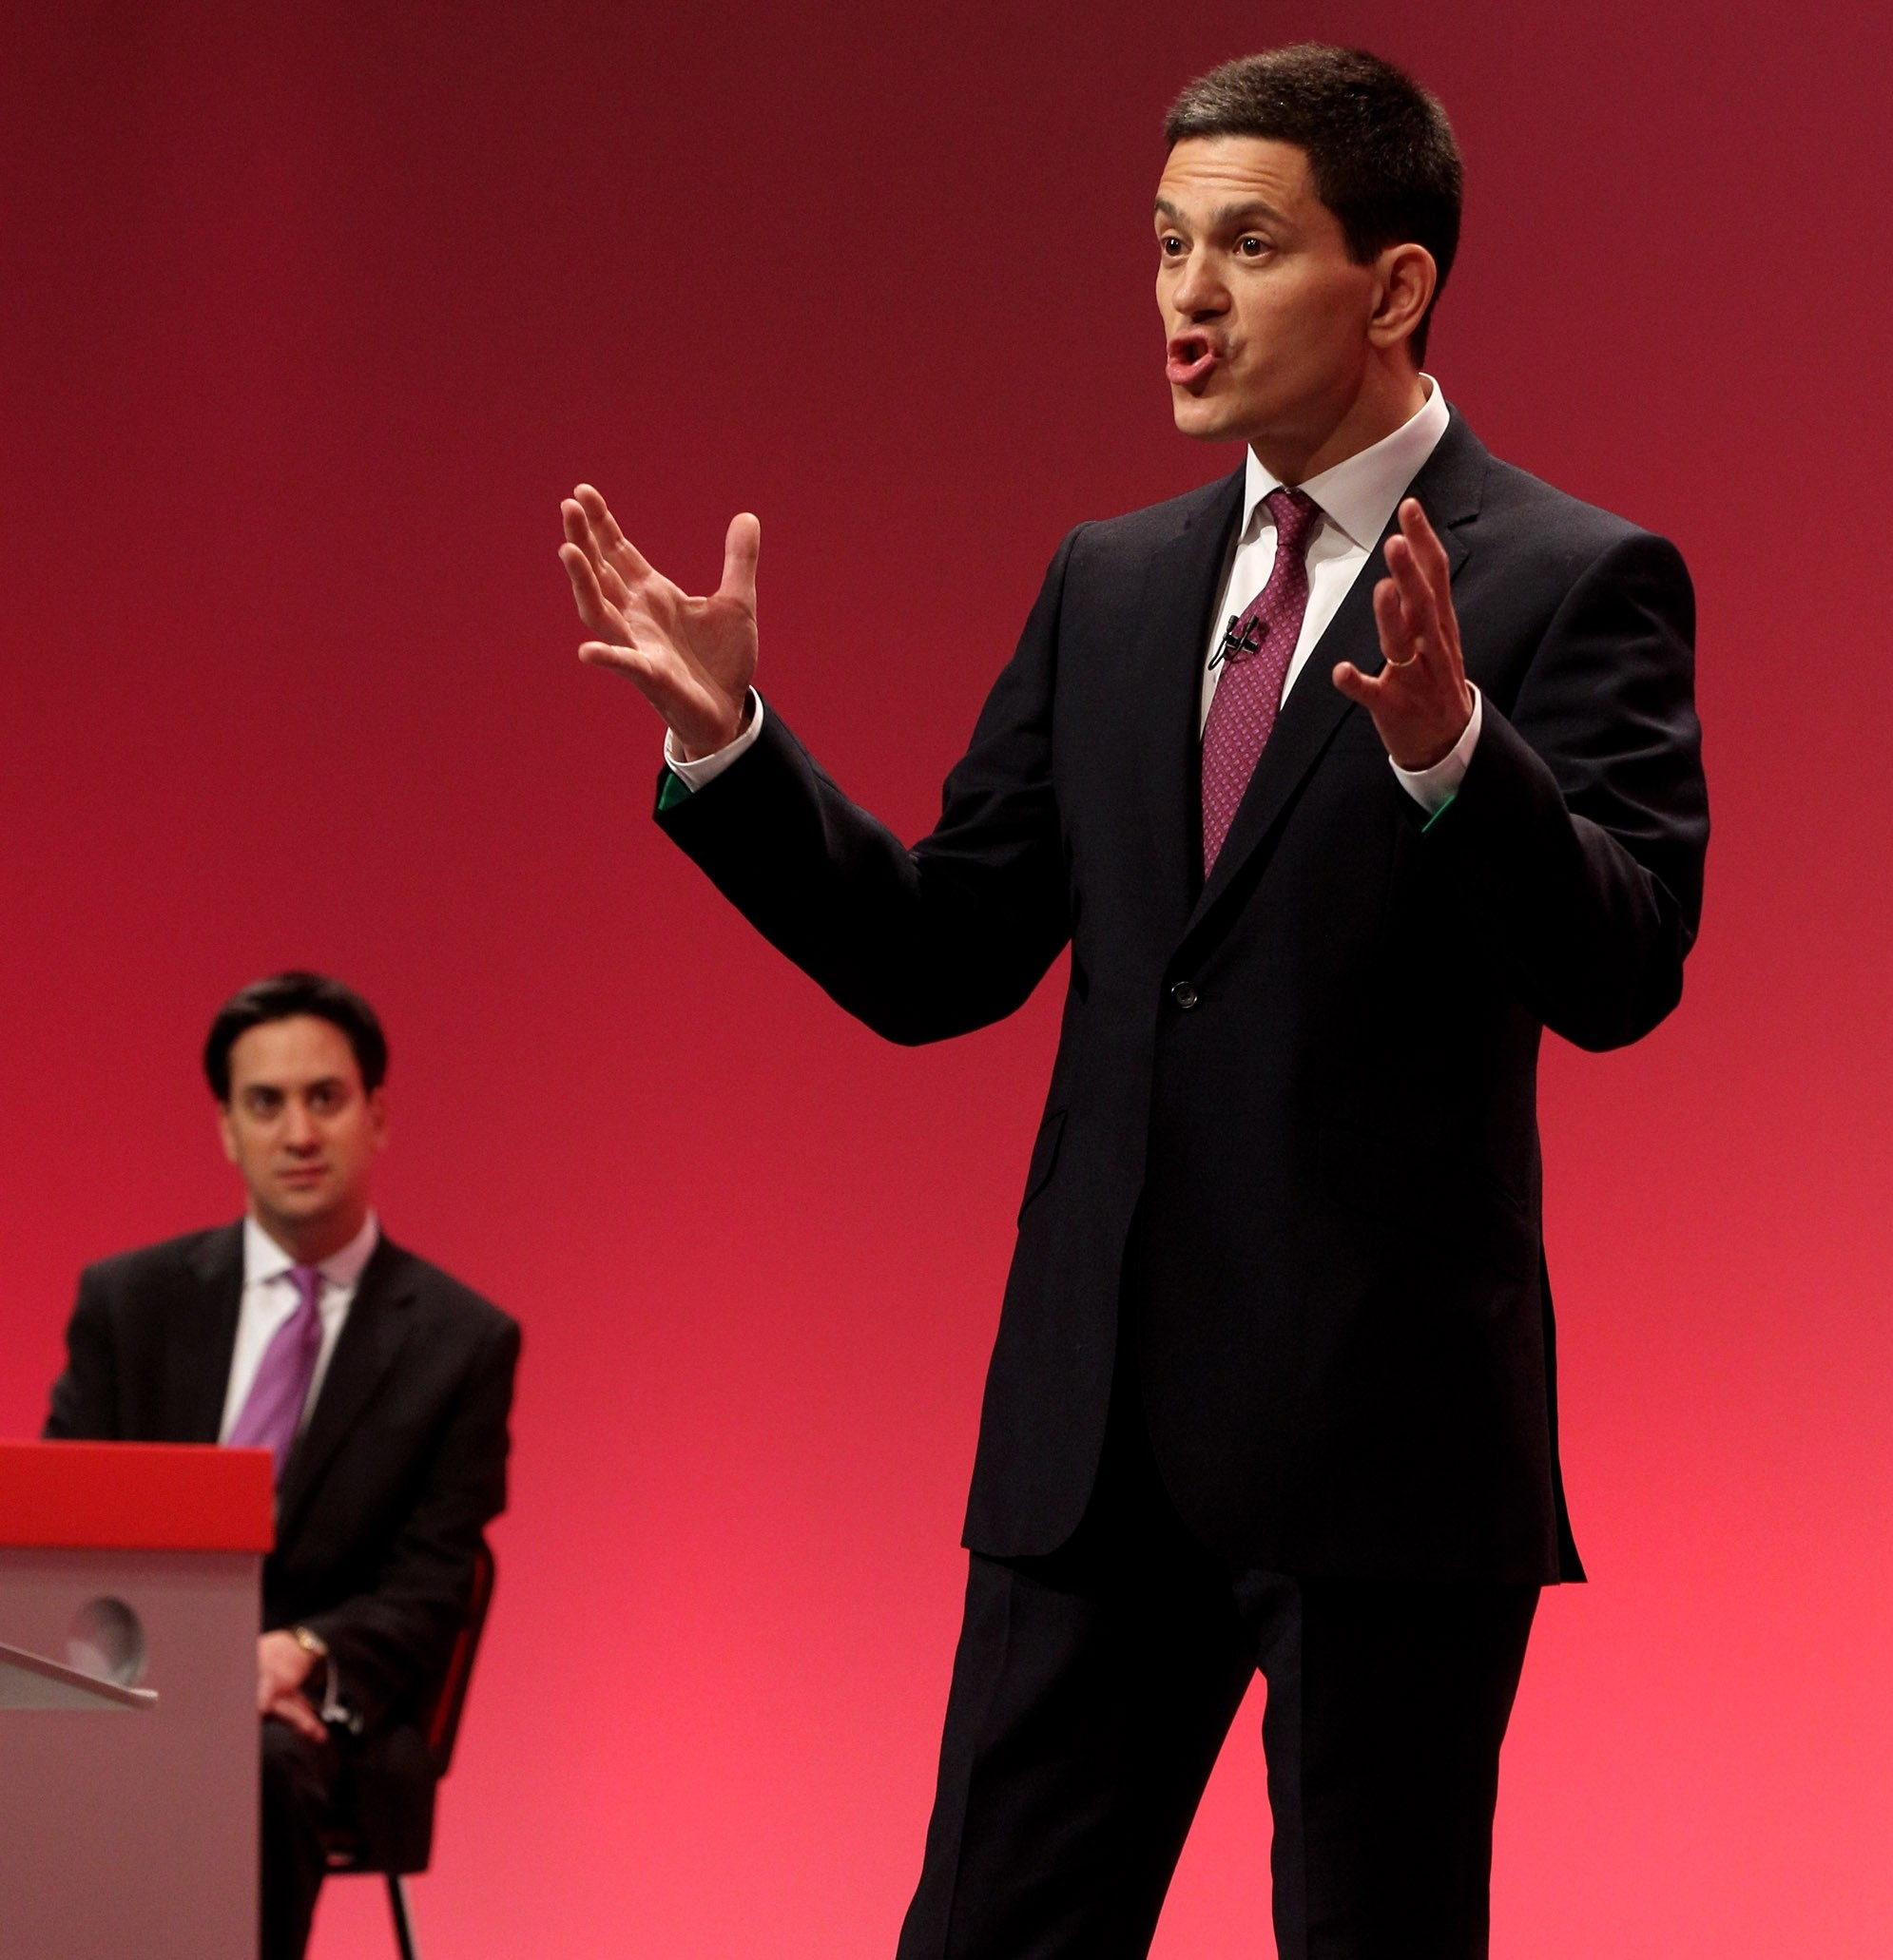 David Miliband To Step Down As MP